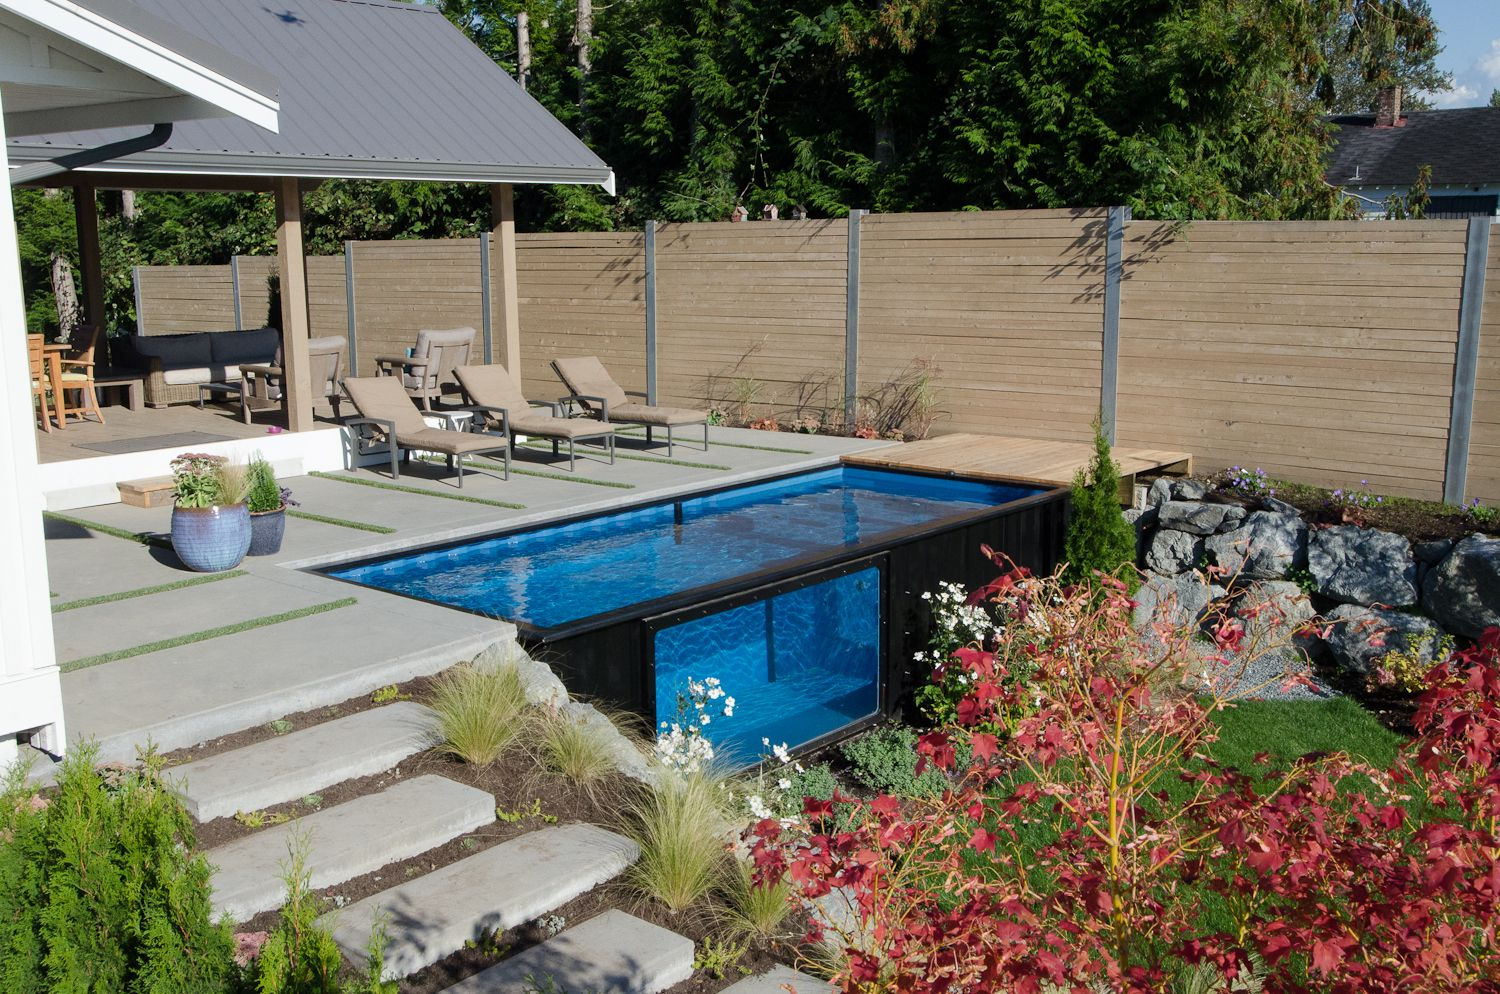 18 In-Ground Pool Designs - Best Swimming Pool Design Ideas for